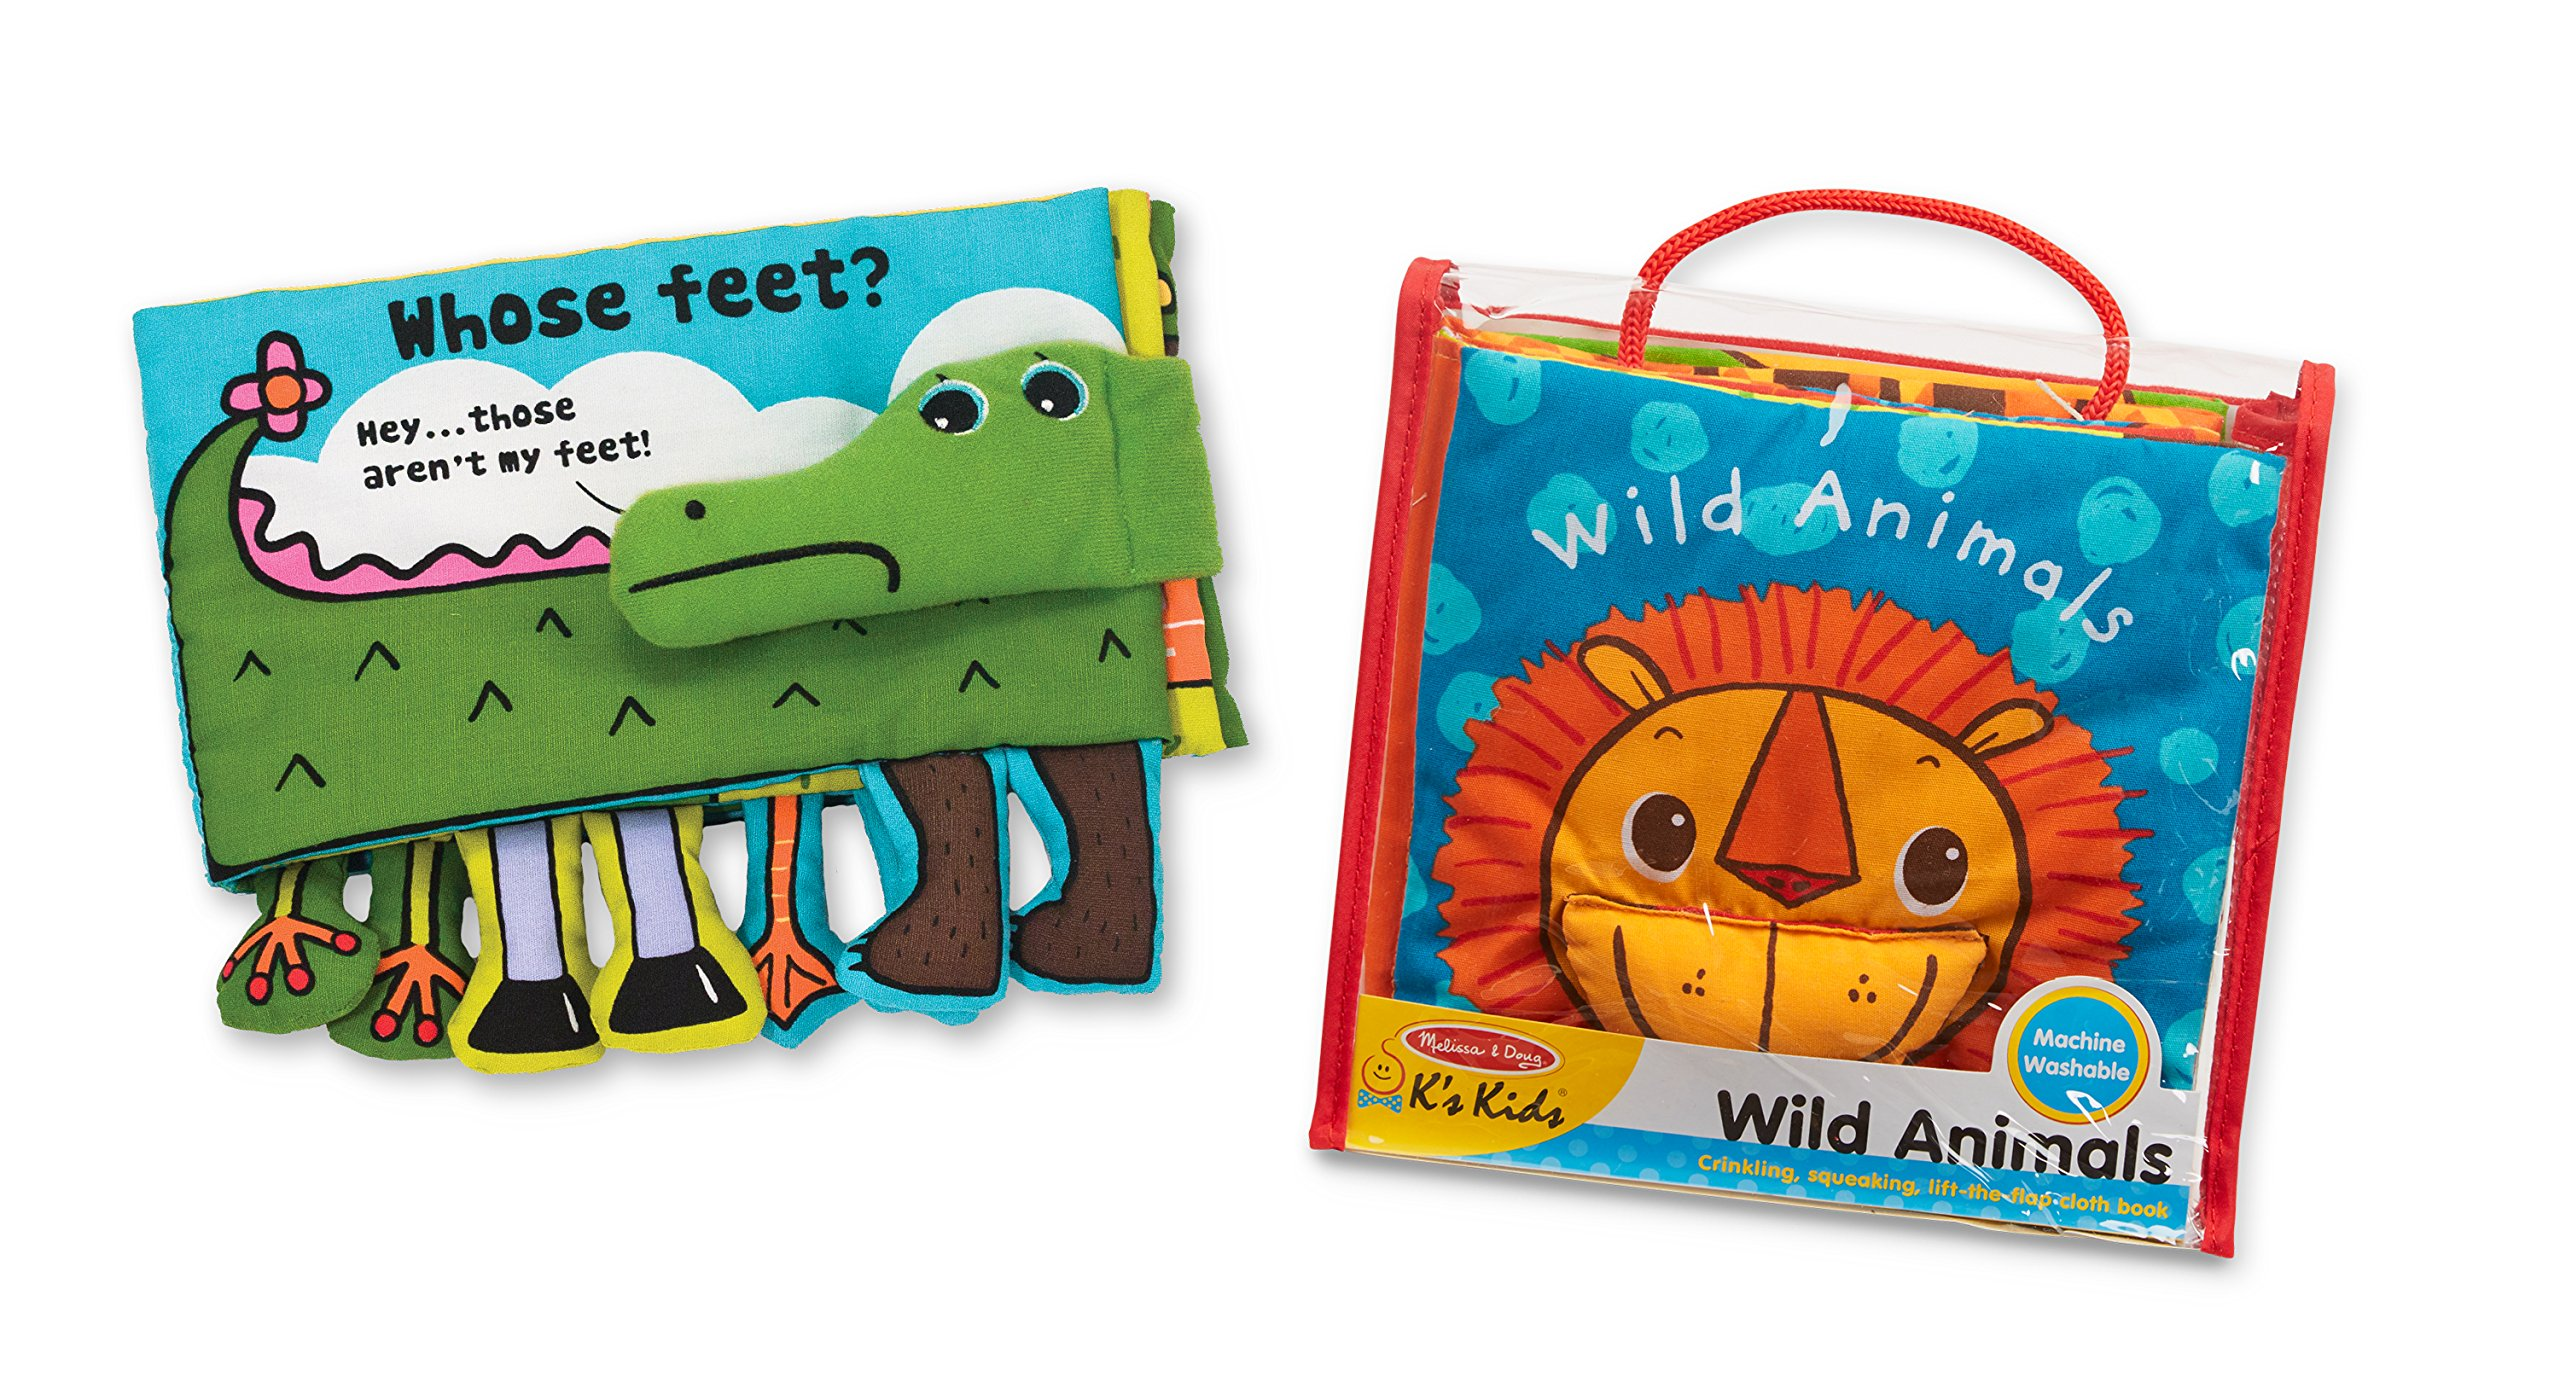 Melissa & Doug K's Kids Soft Activity Baby Book Set: Animals (Whose Feet? and Wild Animals)